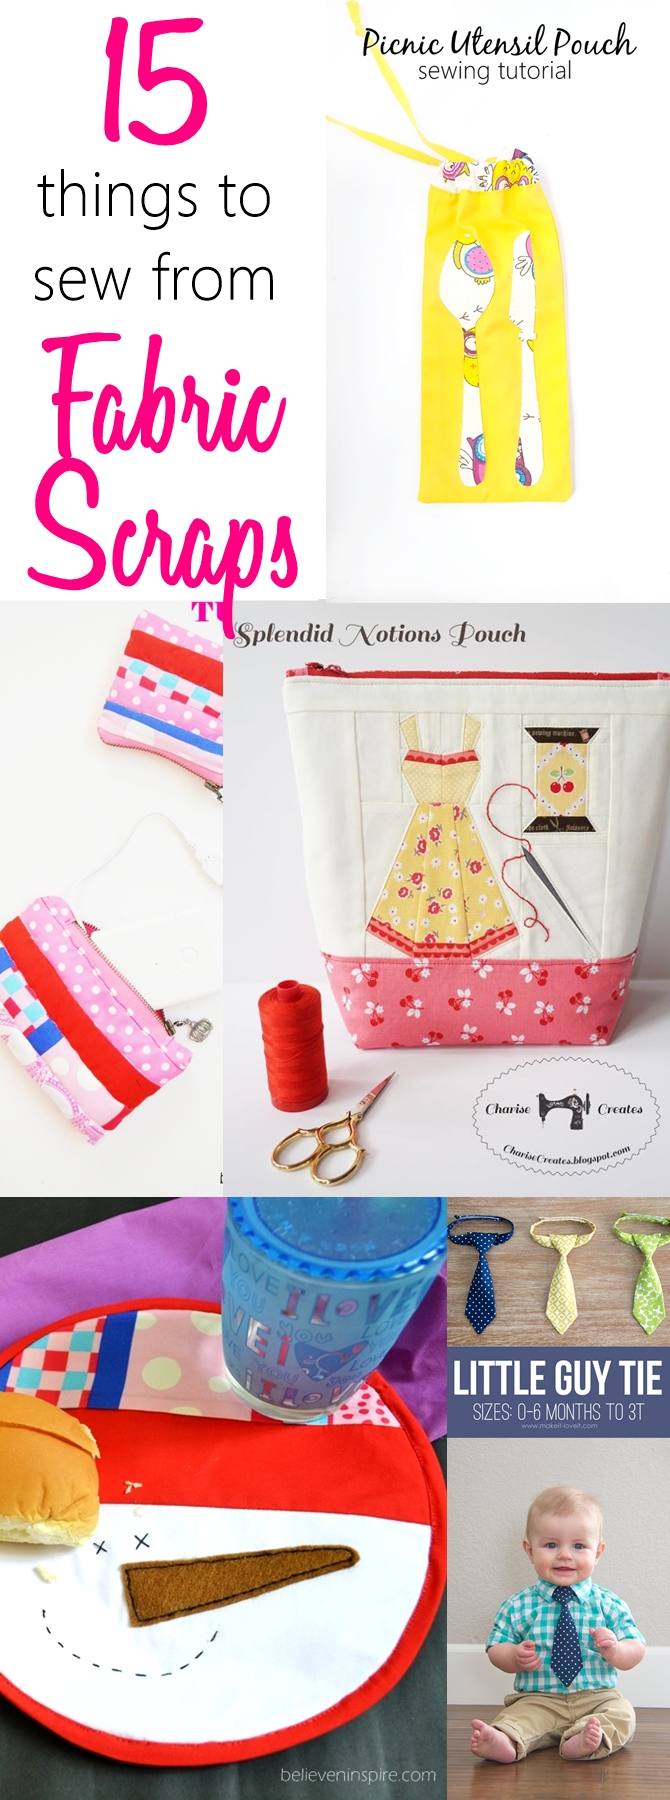 15 things to sew from fabric scraps. Check out these awesome Things to sew with fabric scraps which can be made from left over fabric in a jiffy! Great ideas for beginner sewing projects.